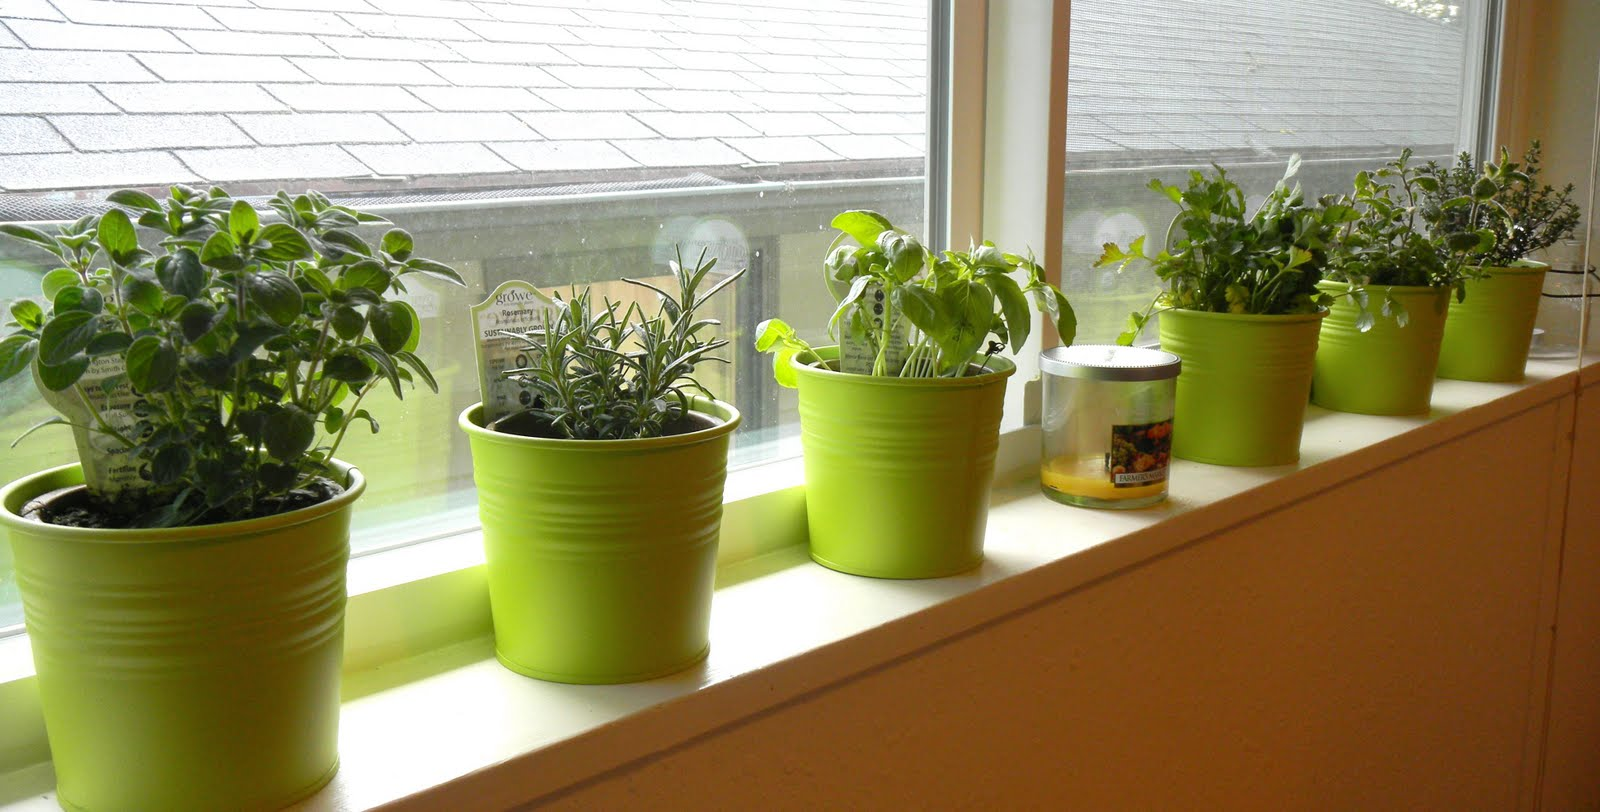 Kitchen Window Garden Similiar Window Sill Herb Garden Keywords